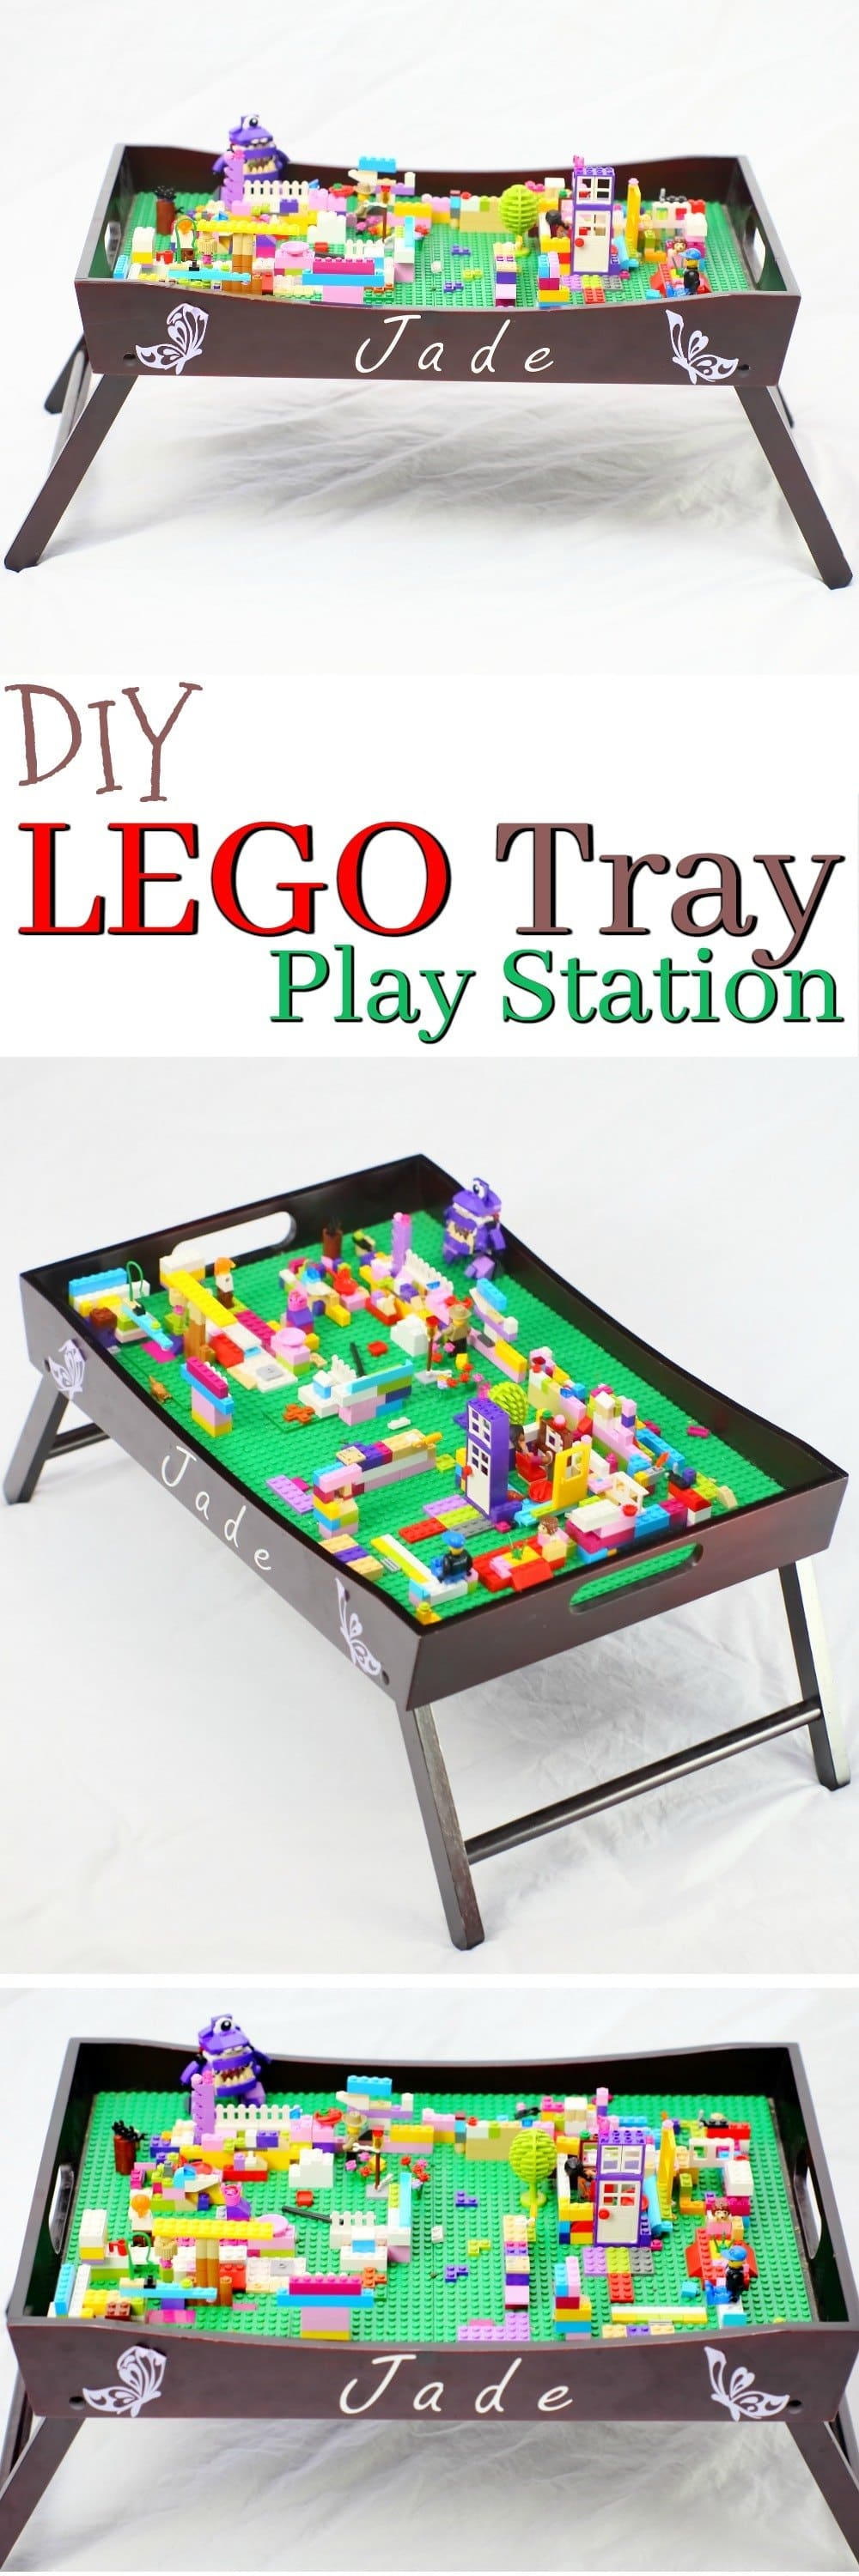 This LEGO Tray Play station is such a simple project even the most Novice crafter can create it! The Lego Tray play station is an excellent gift for LEGO lovers, and something you can easily create at home in a single afternoon.